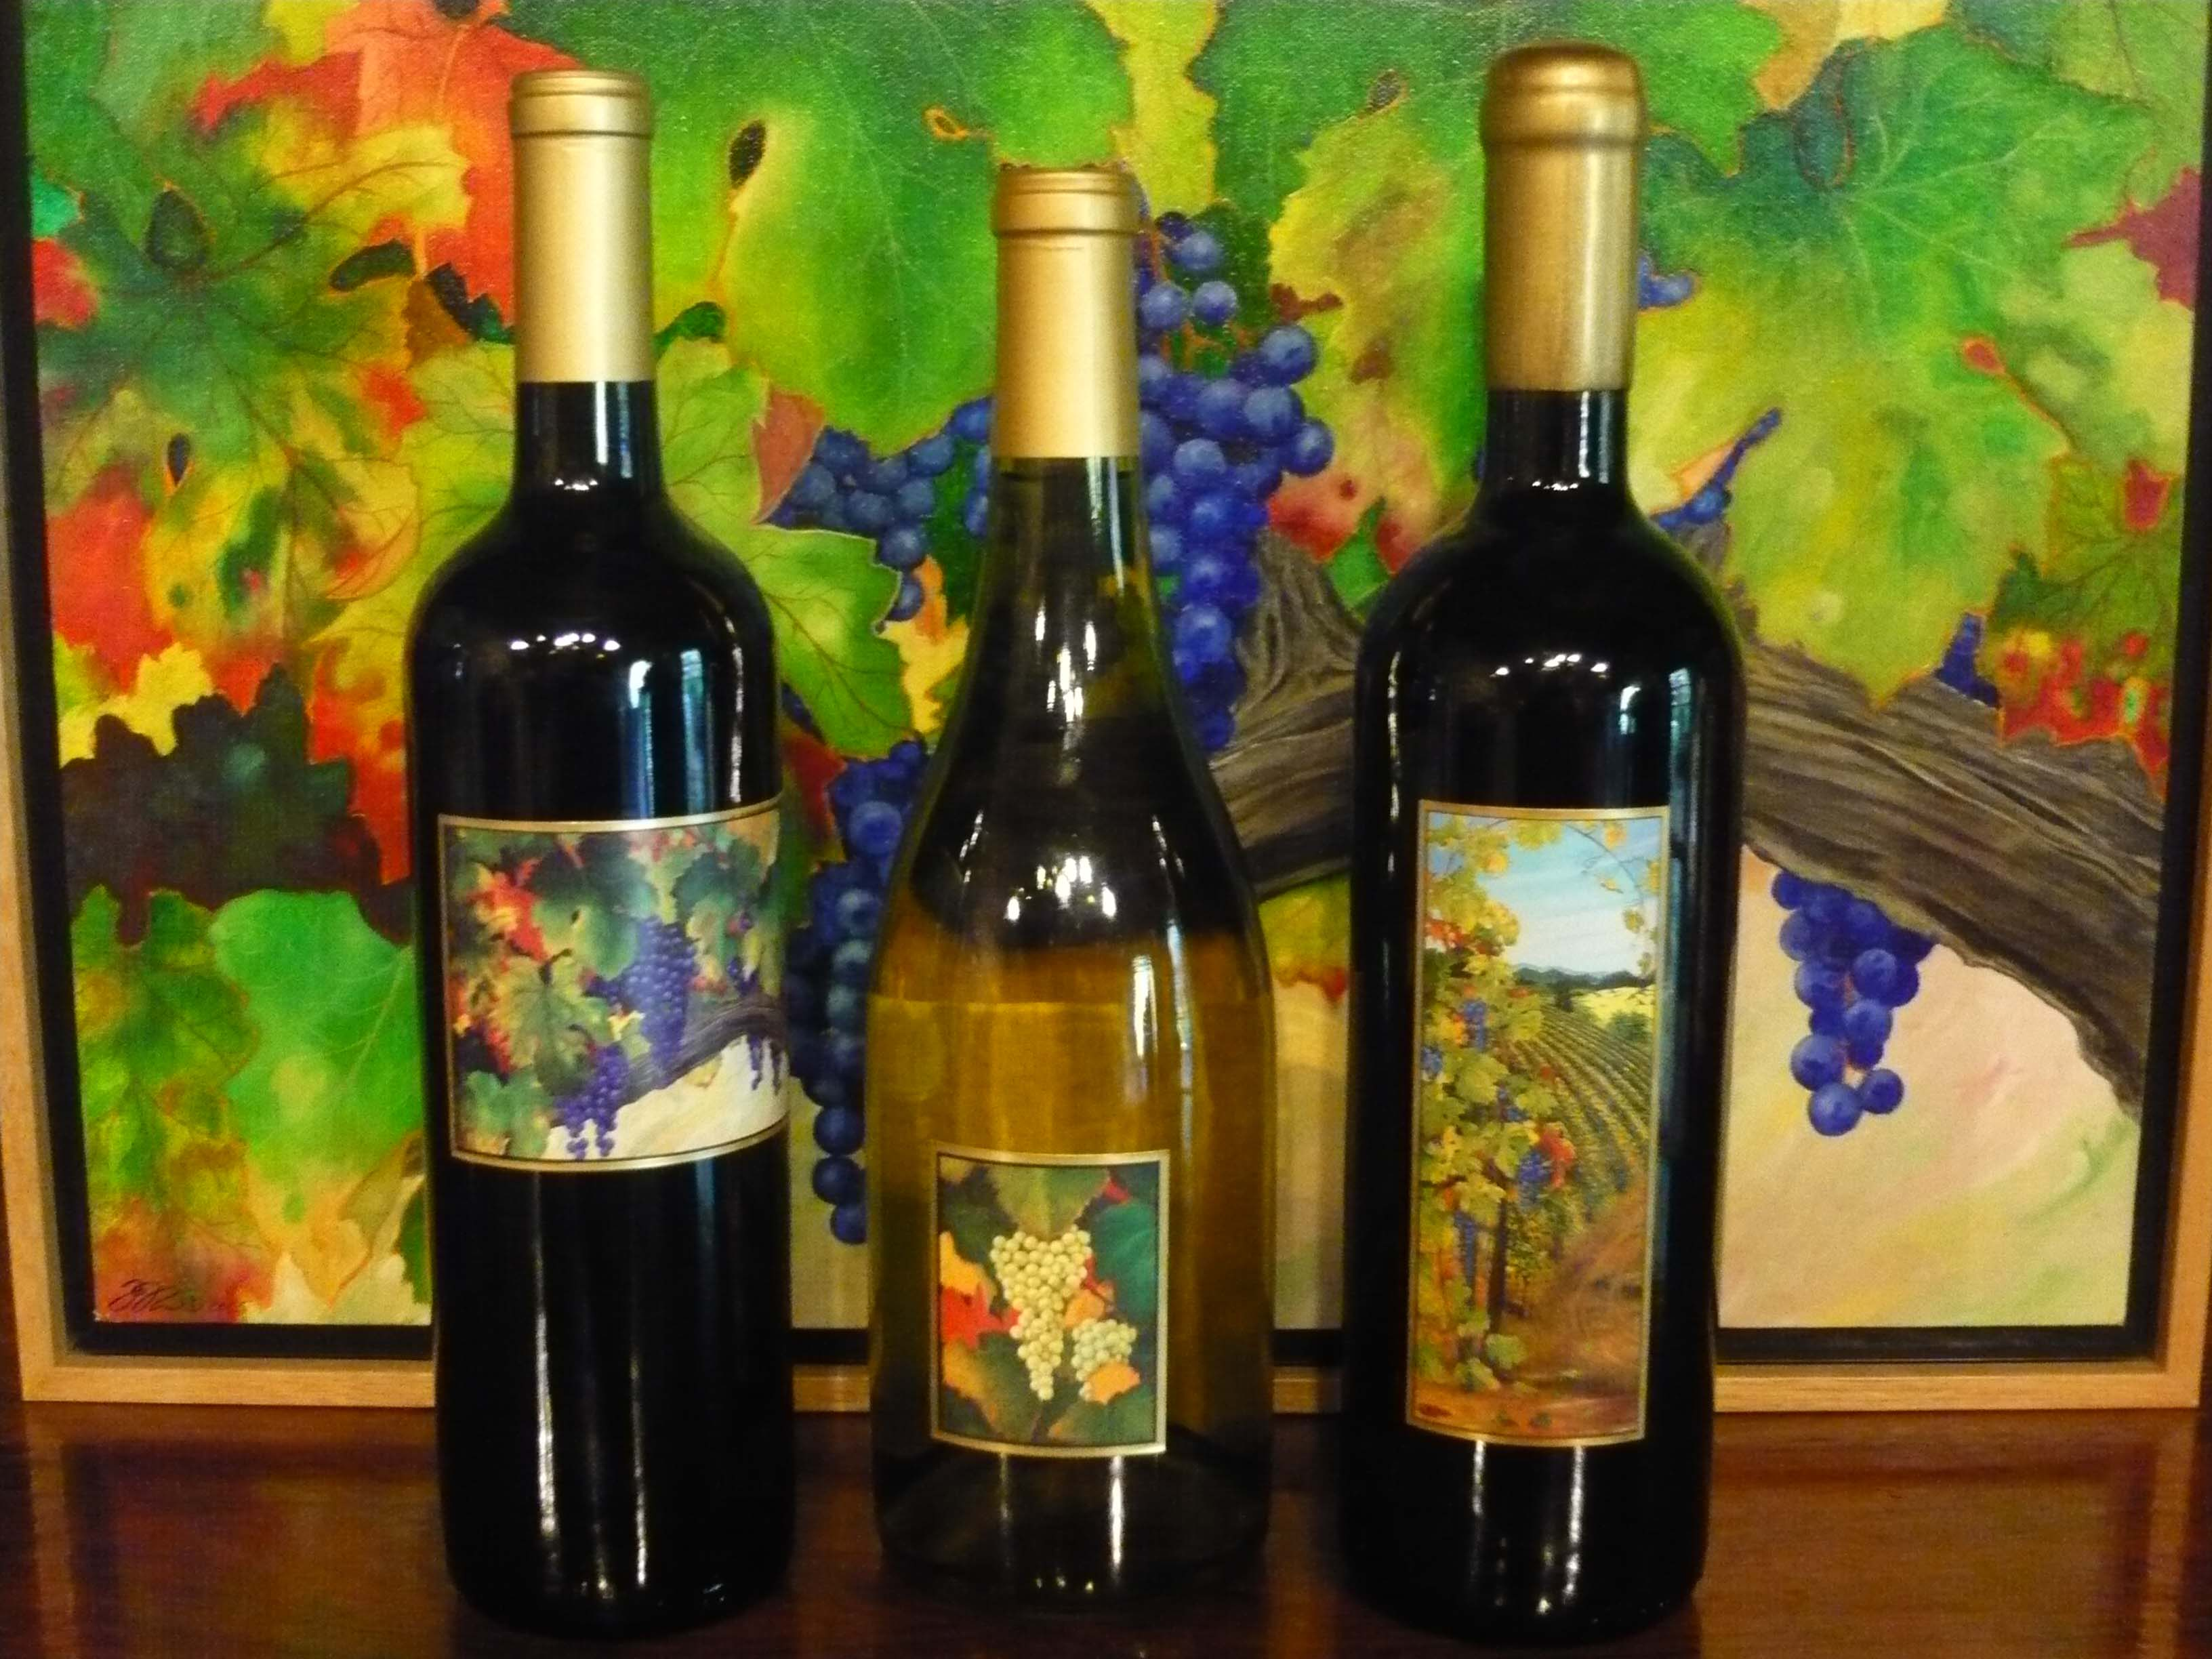 Artevino Zinfandel Red Wine Handcrafted Artfully Made Wines